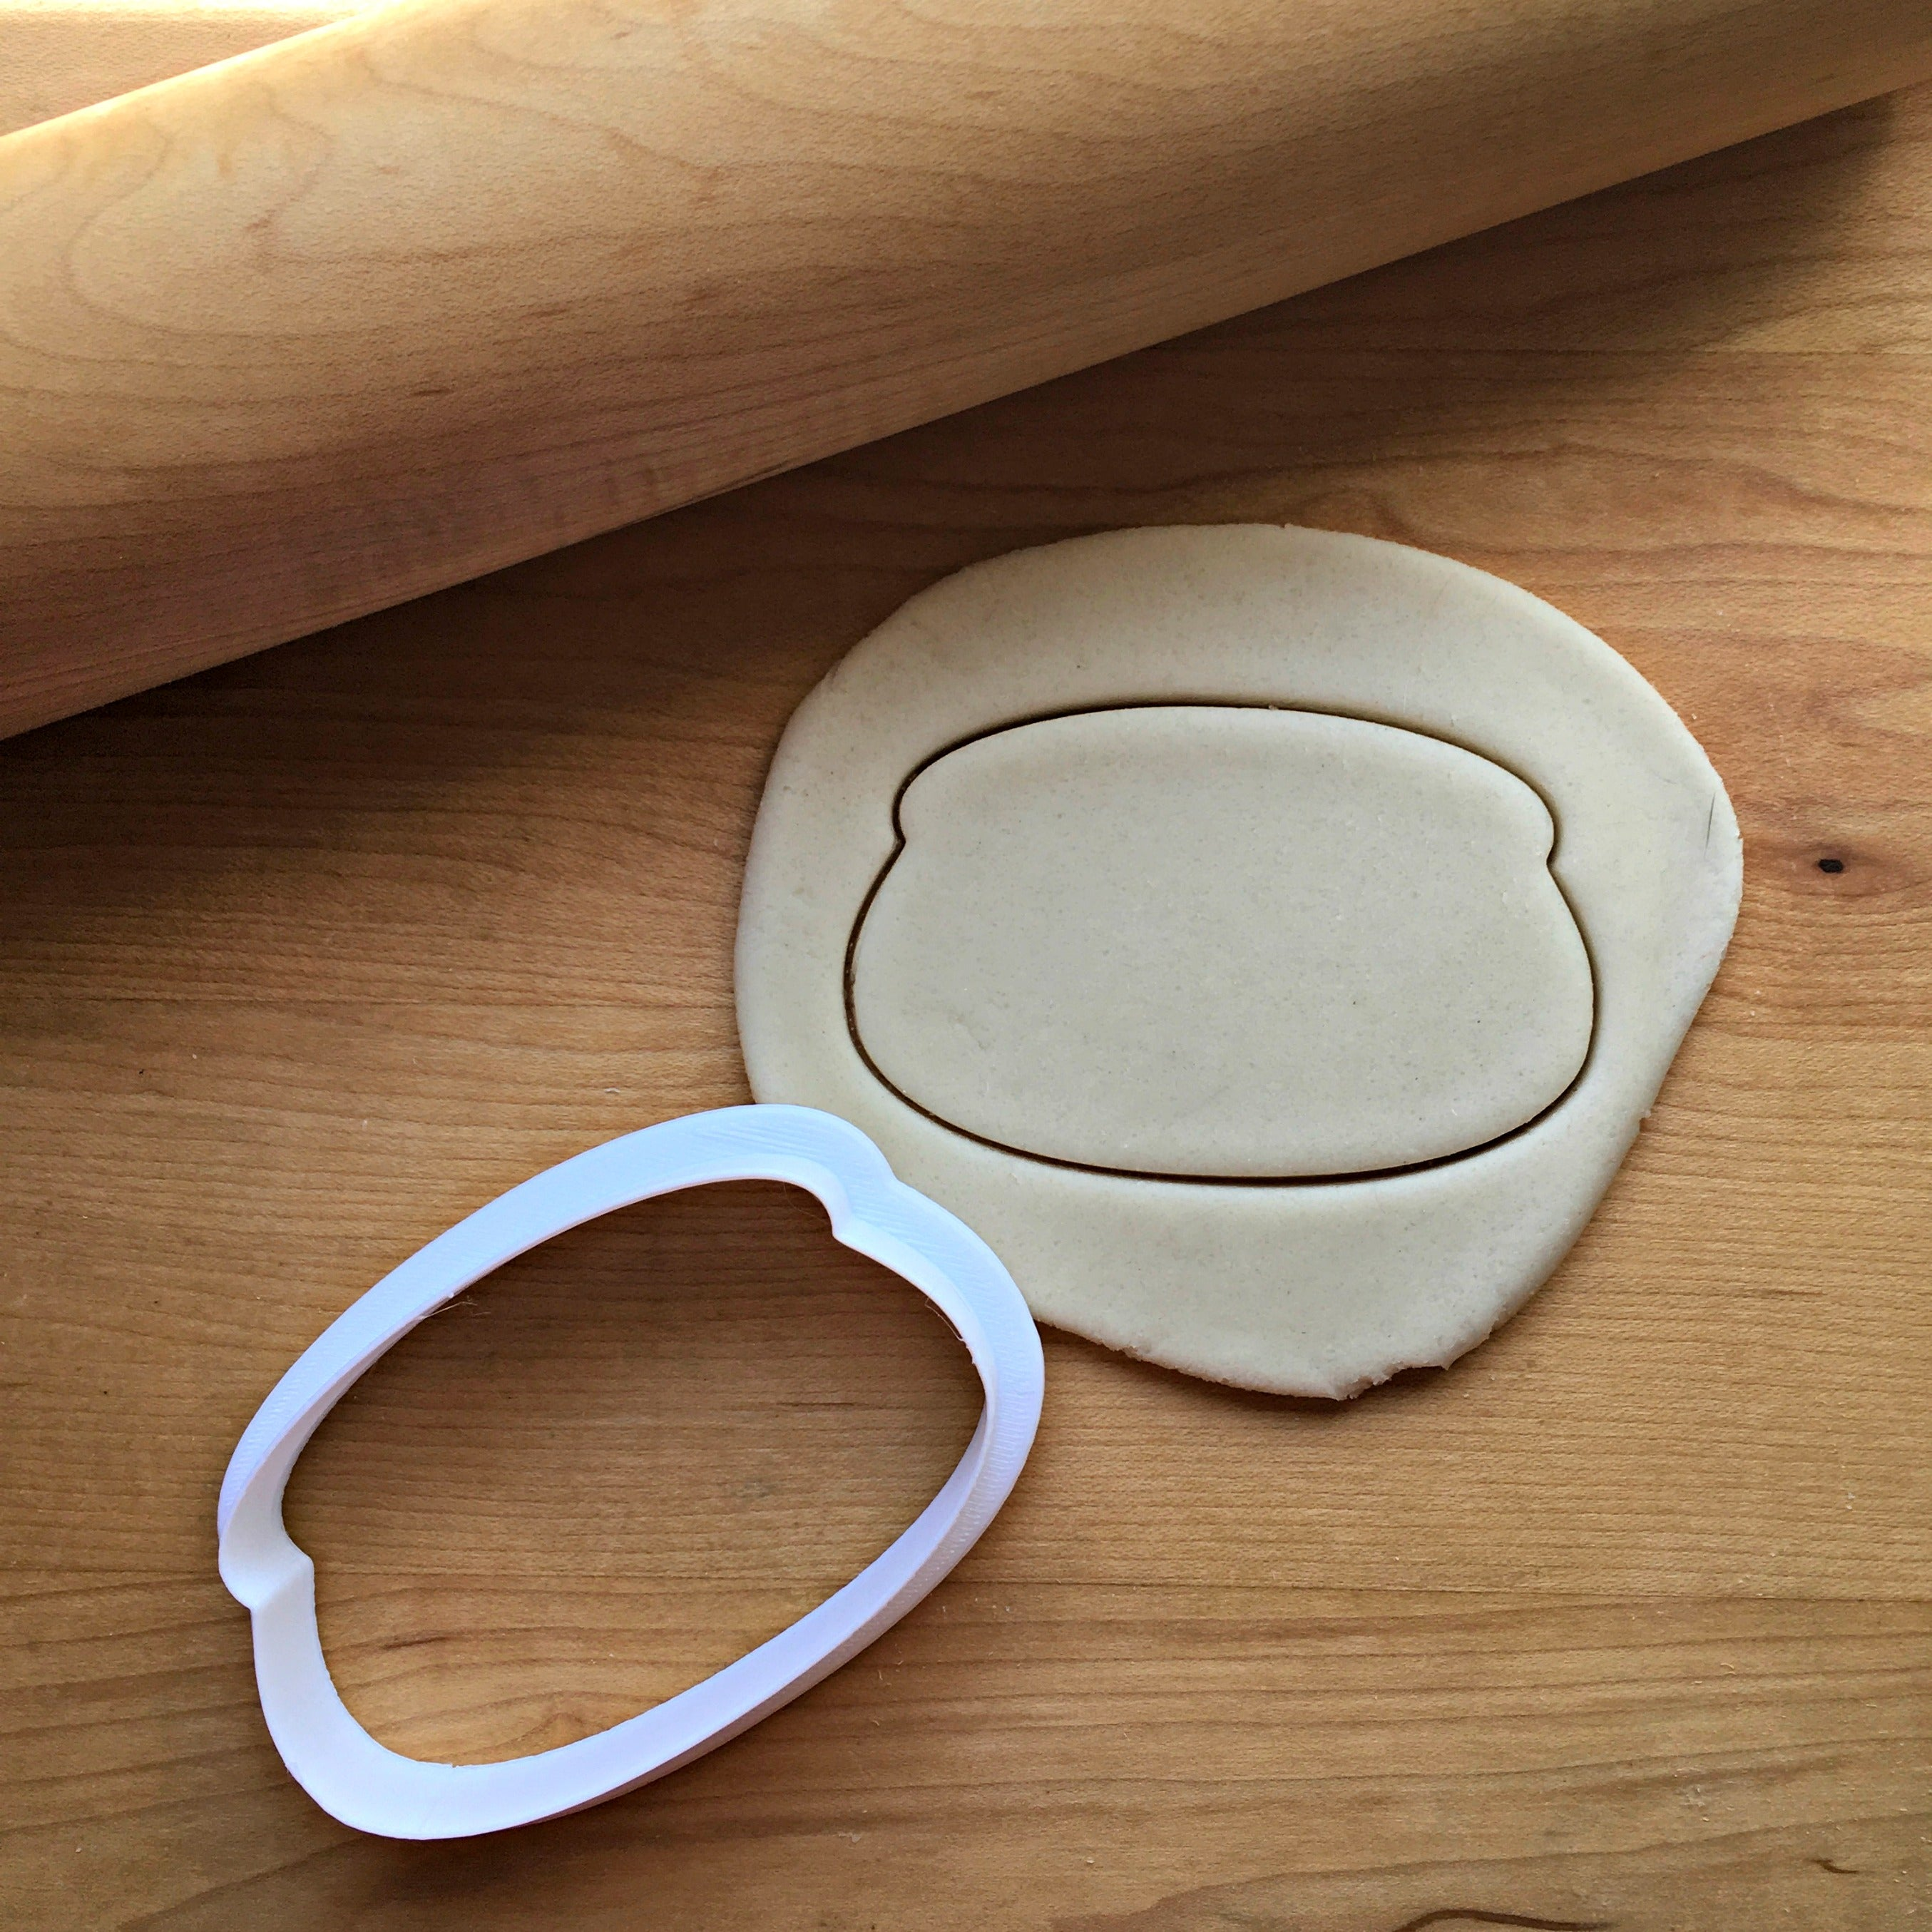 Inflatable Pool Cookie Cutter/Dishwasher Safe